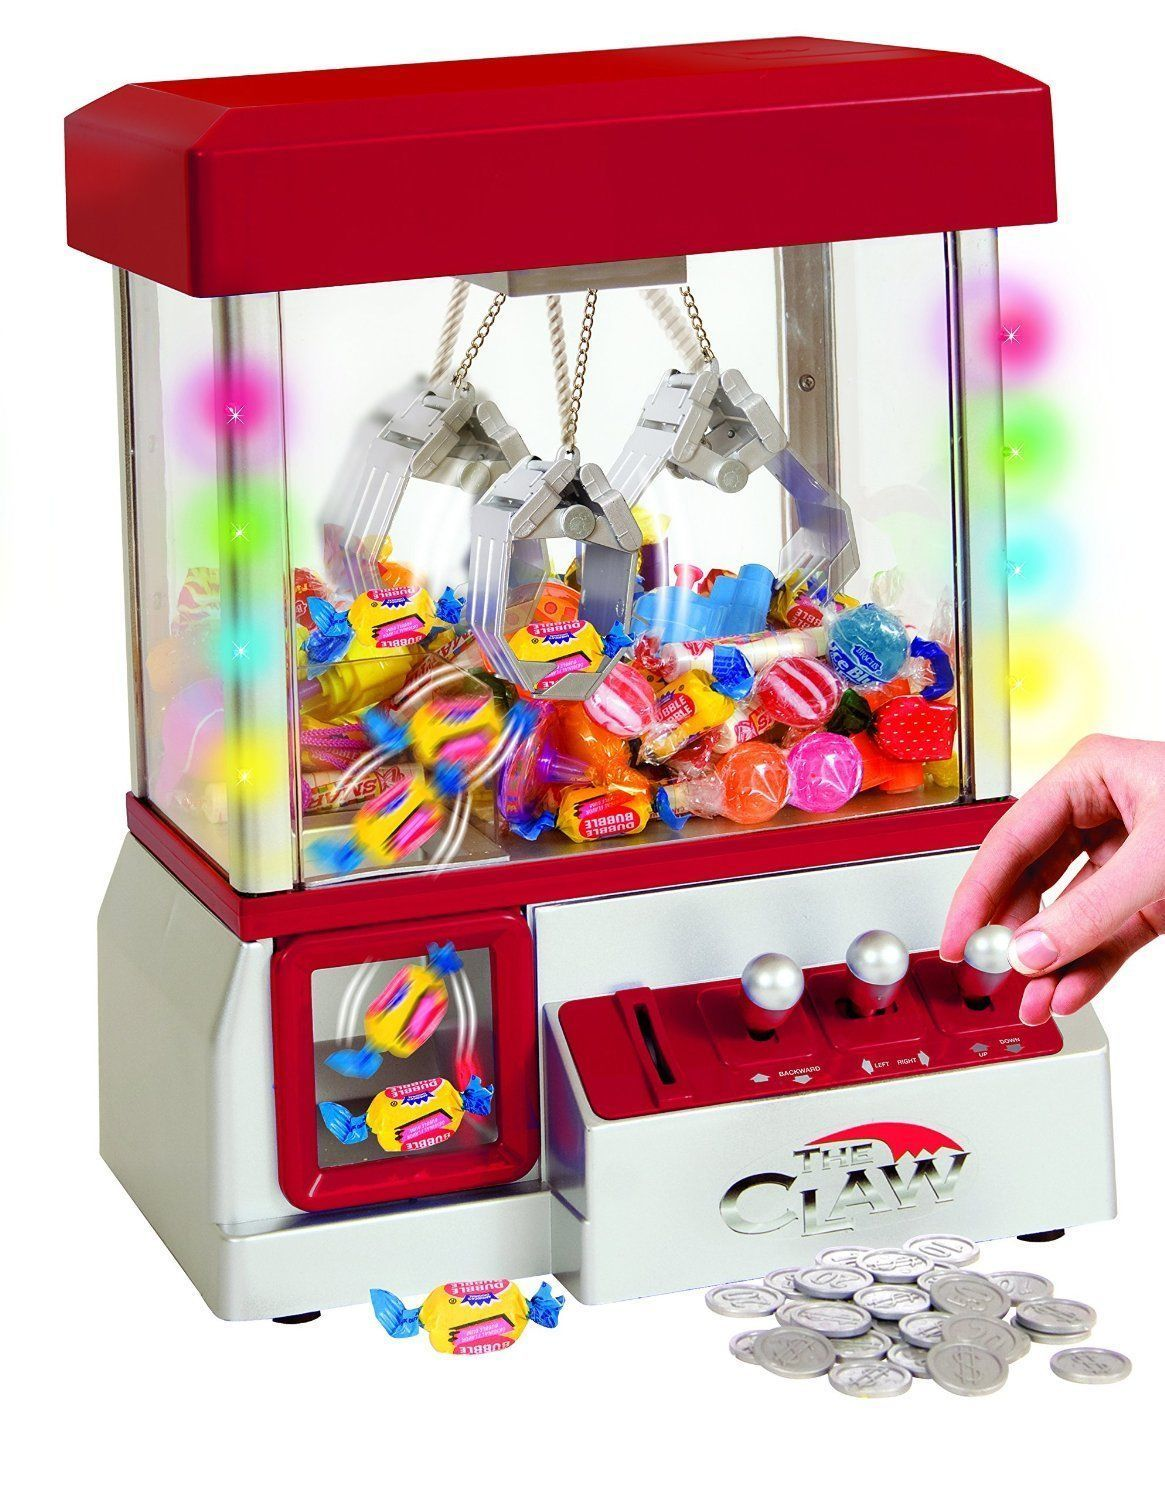 Cool Digital Claw Machine Led Lights Sweet Grabber Arcade -6037